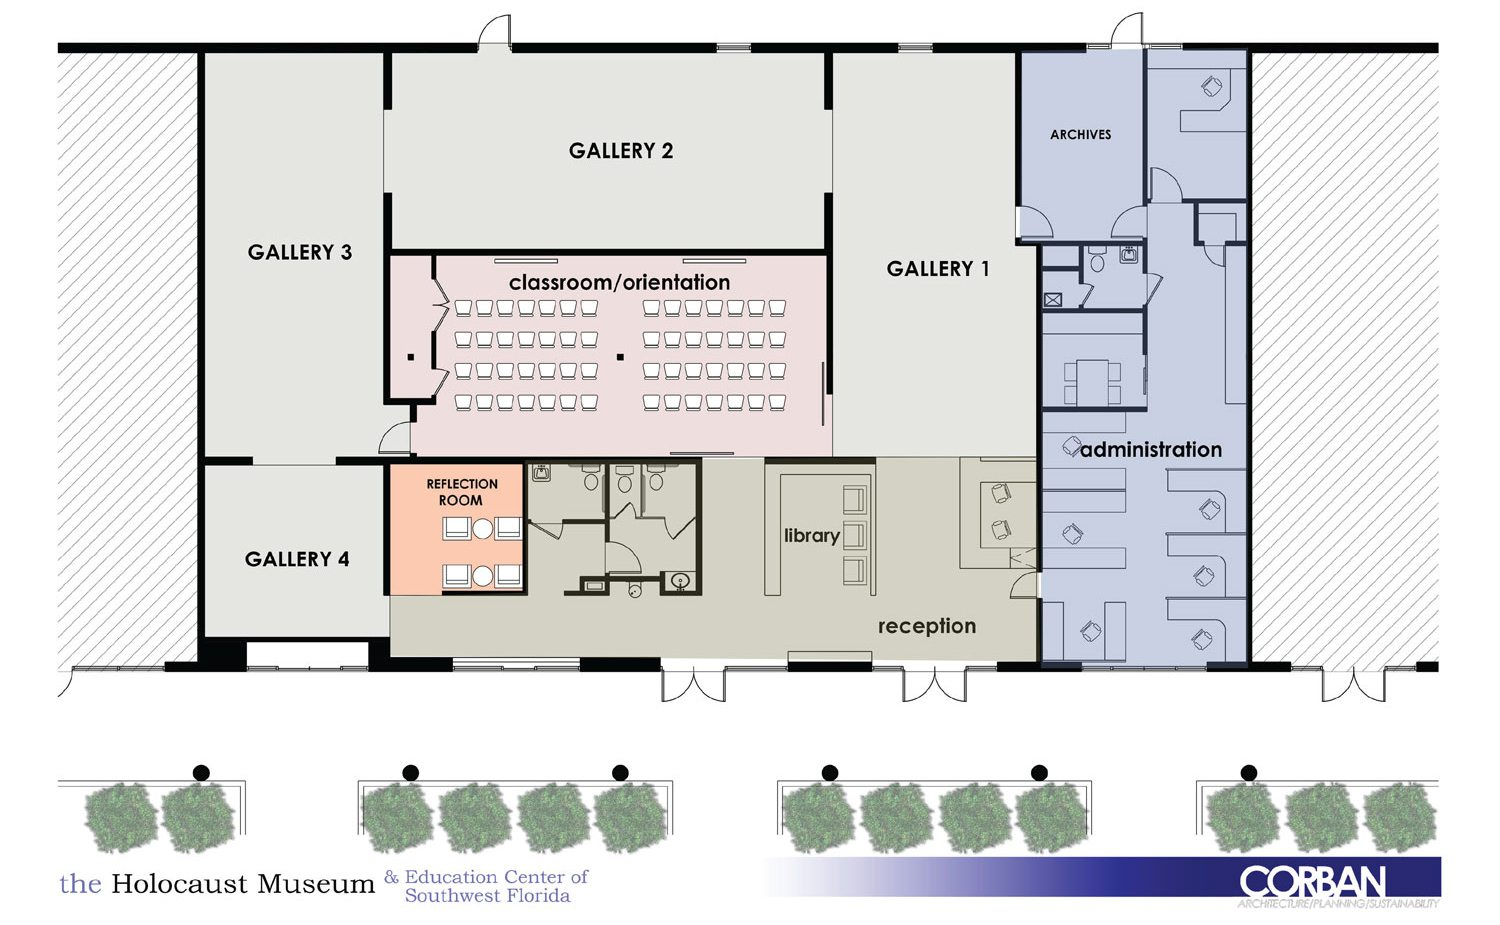 proposed floorplan of new museum